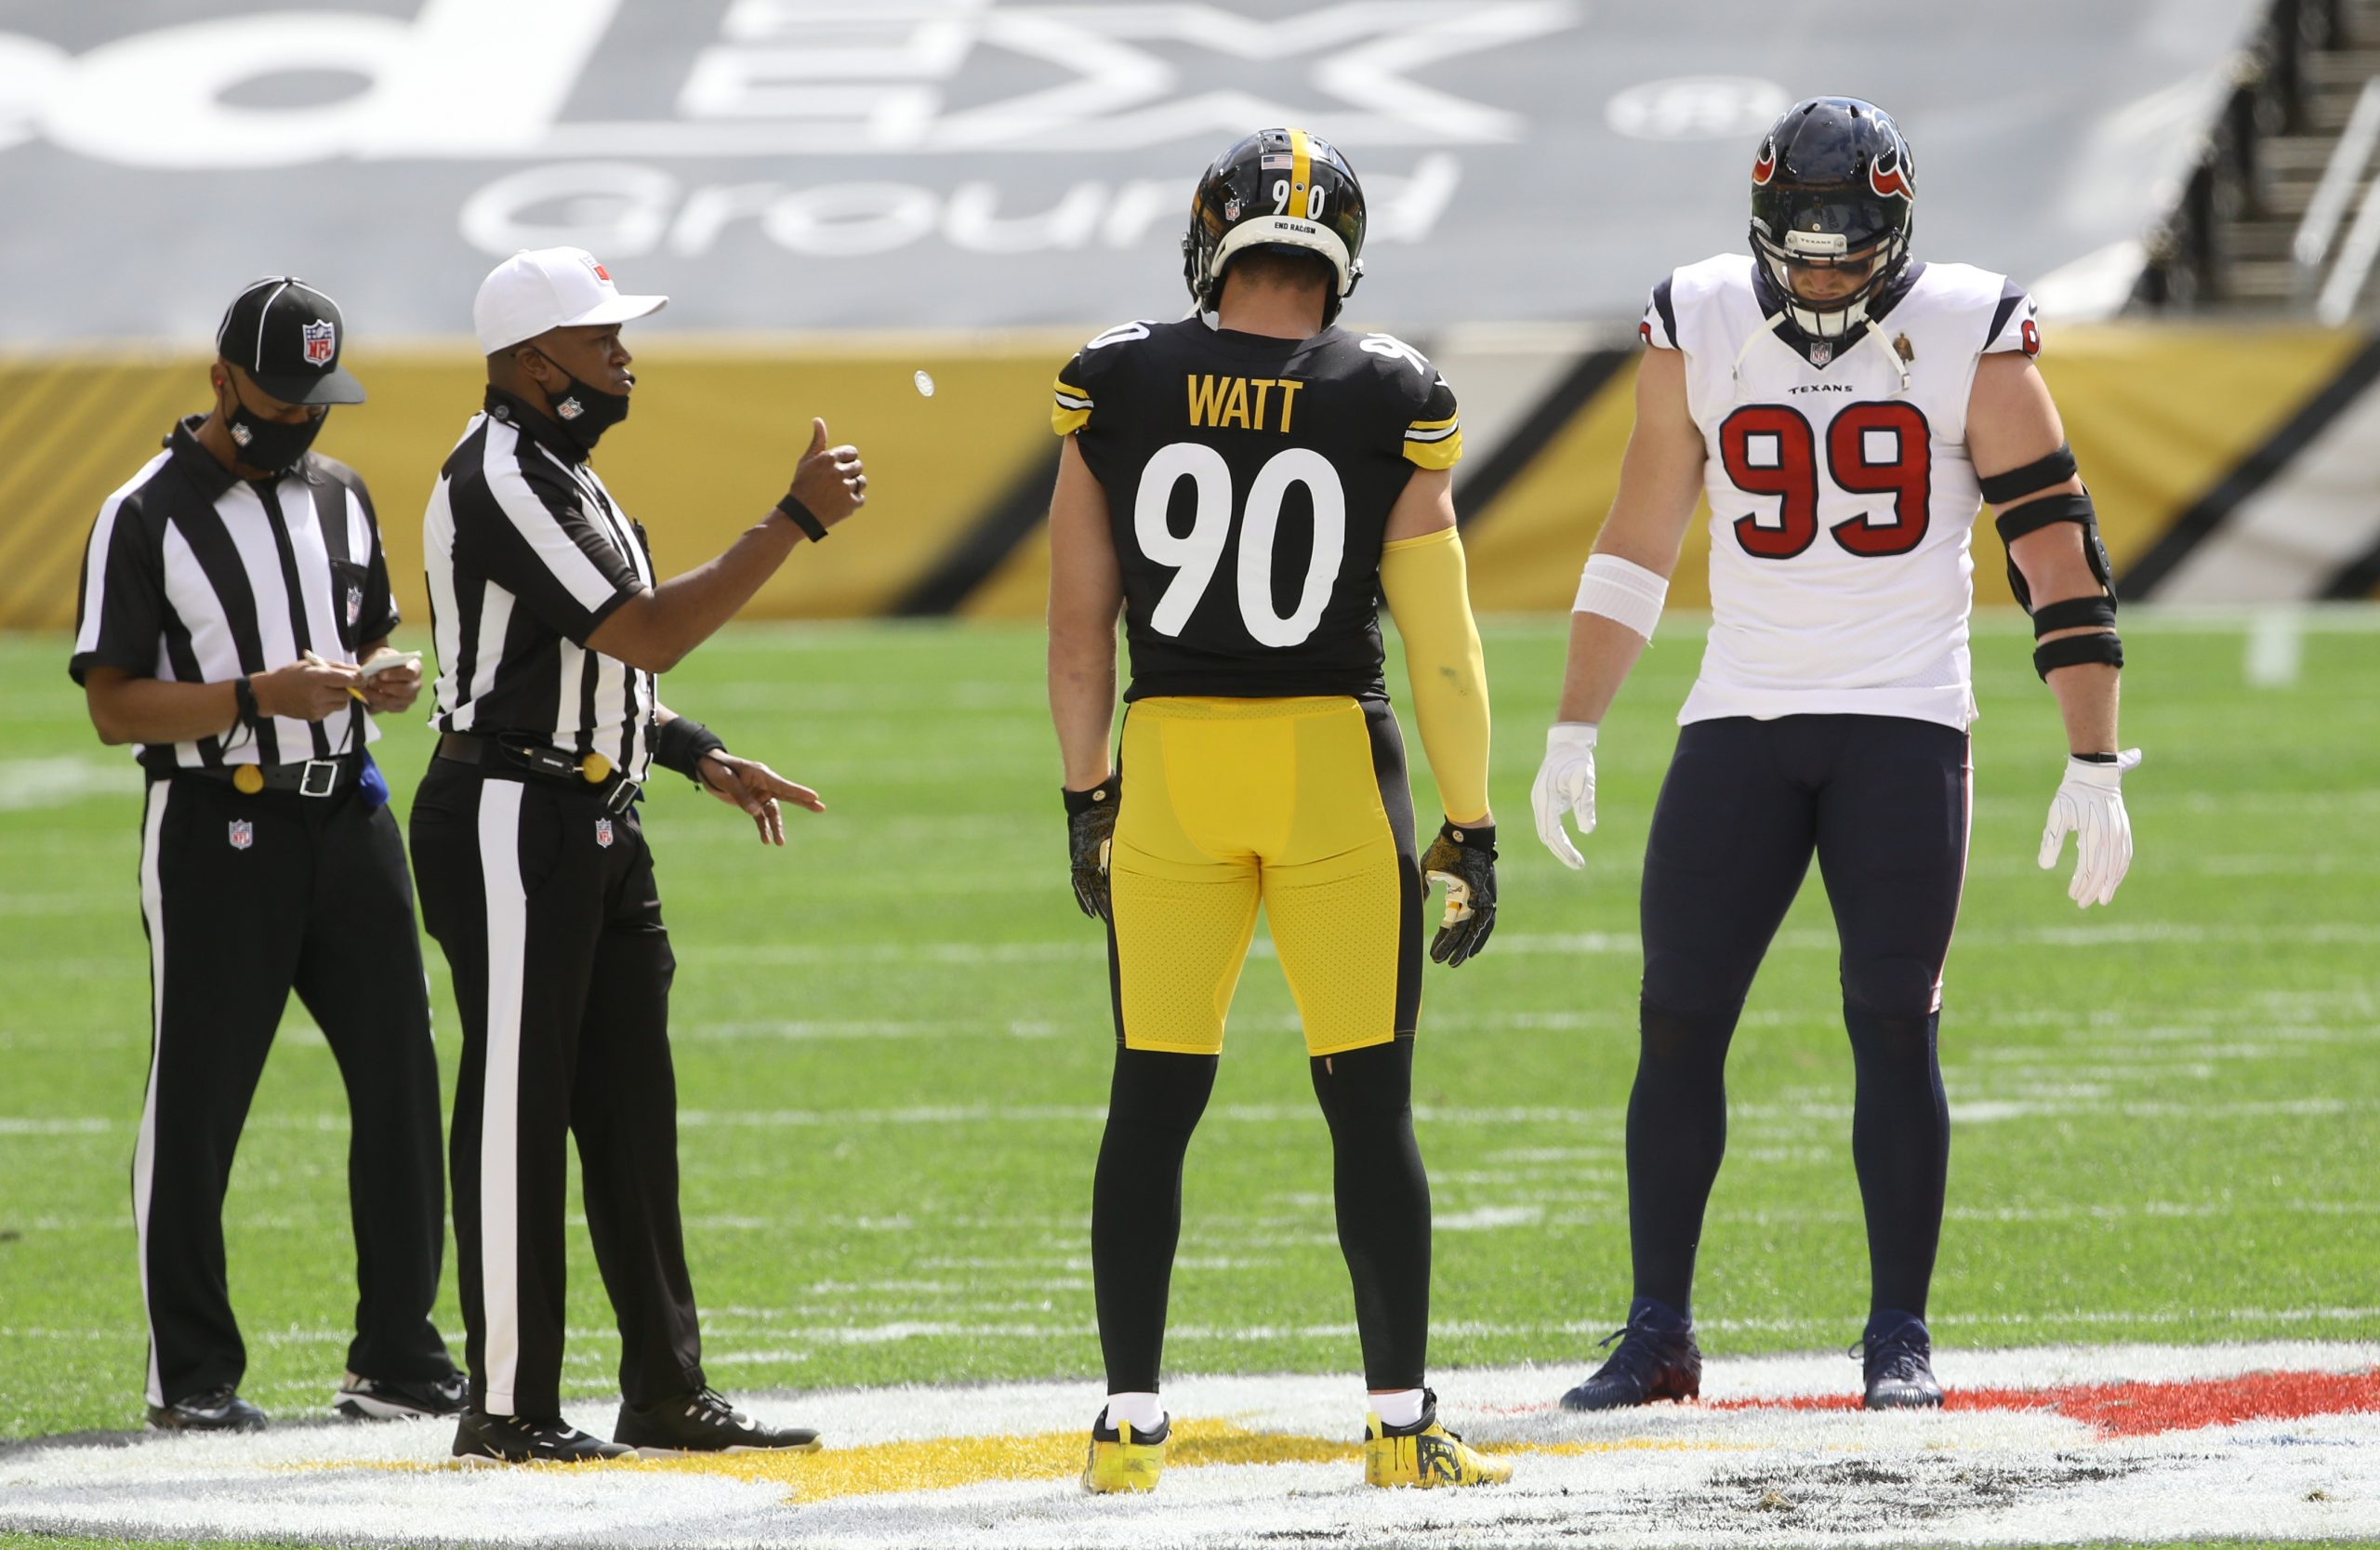 T.J. Watt Becomes NFLs Top-Paid Defensive Player, Brother